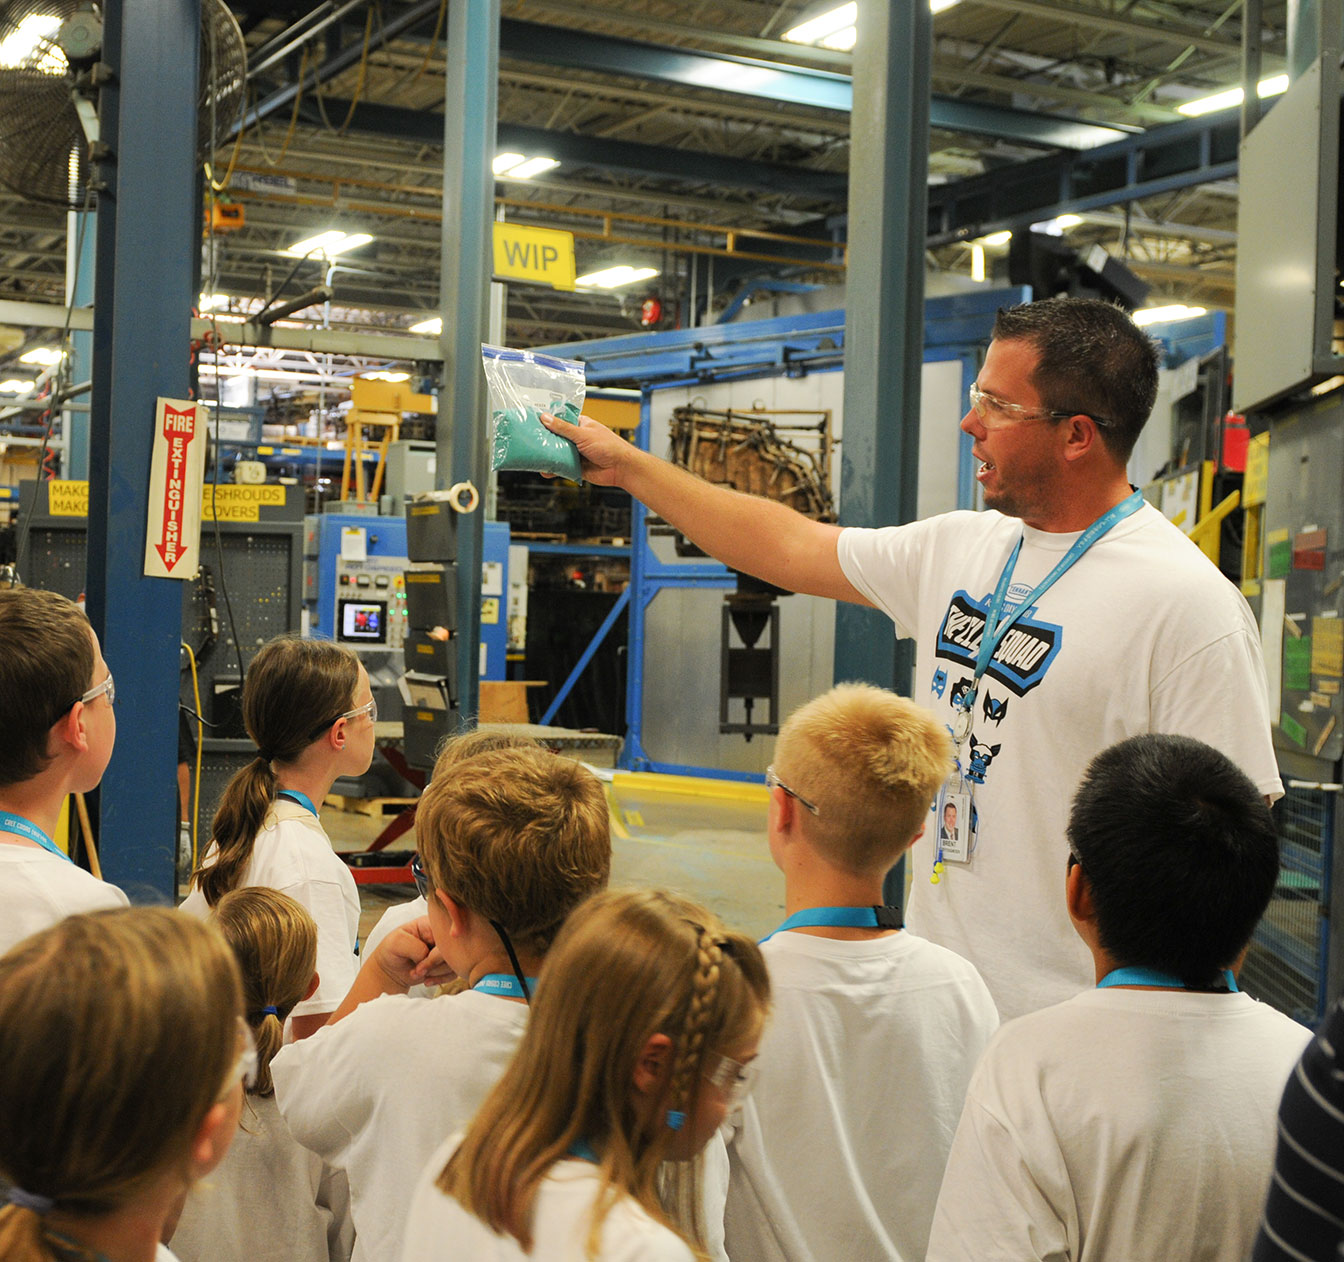 A Tennant employee giving a tour of the manufacturing plant.